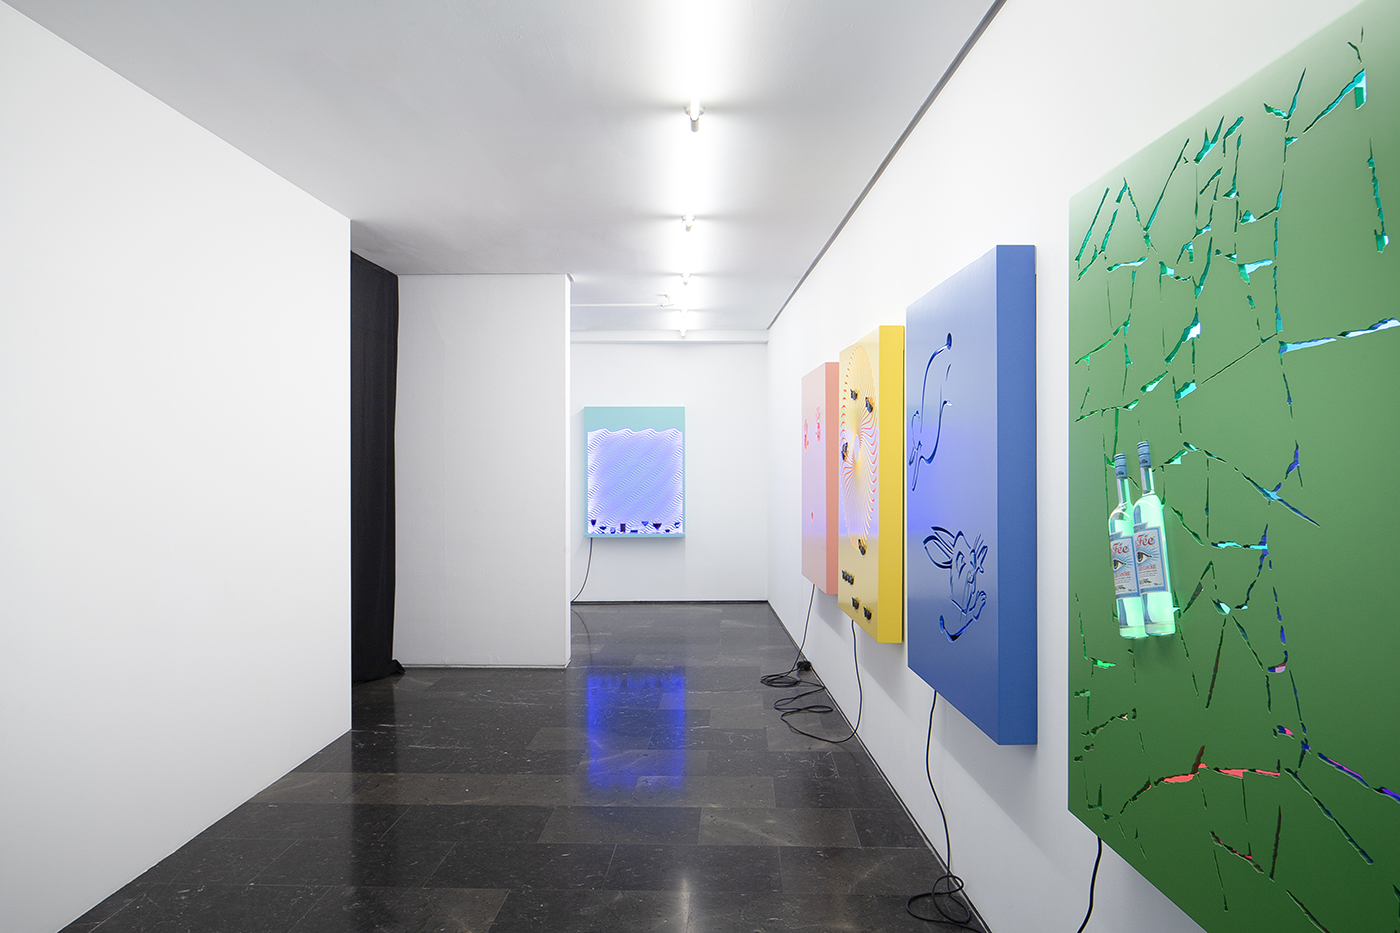 David Ferrando Giraut, Installation view of his solo show, La part maudite, 2018 at Luis Adelantado, Valencia, Spain